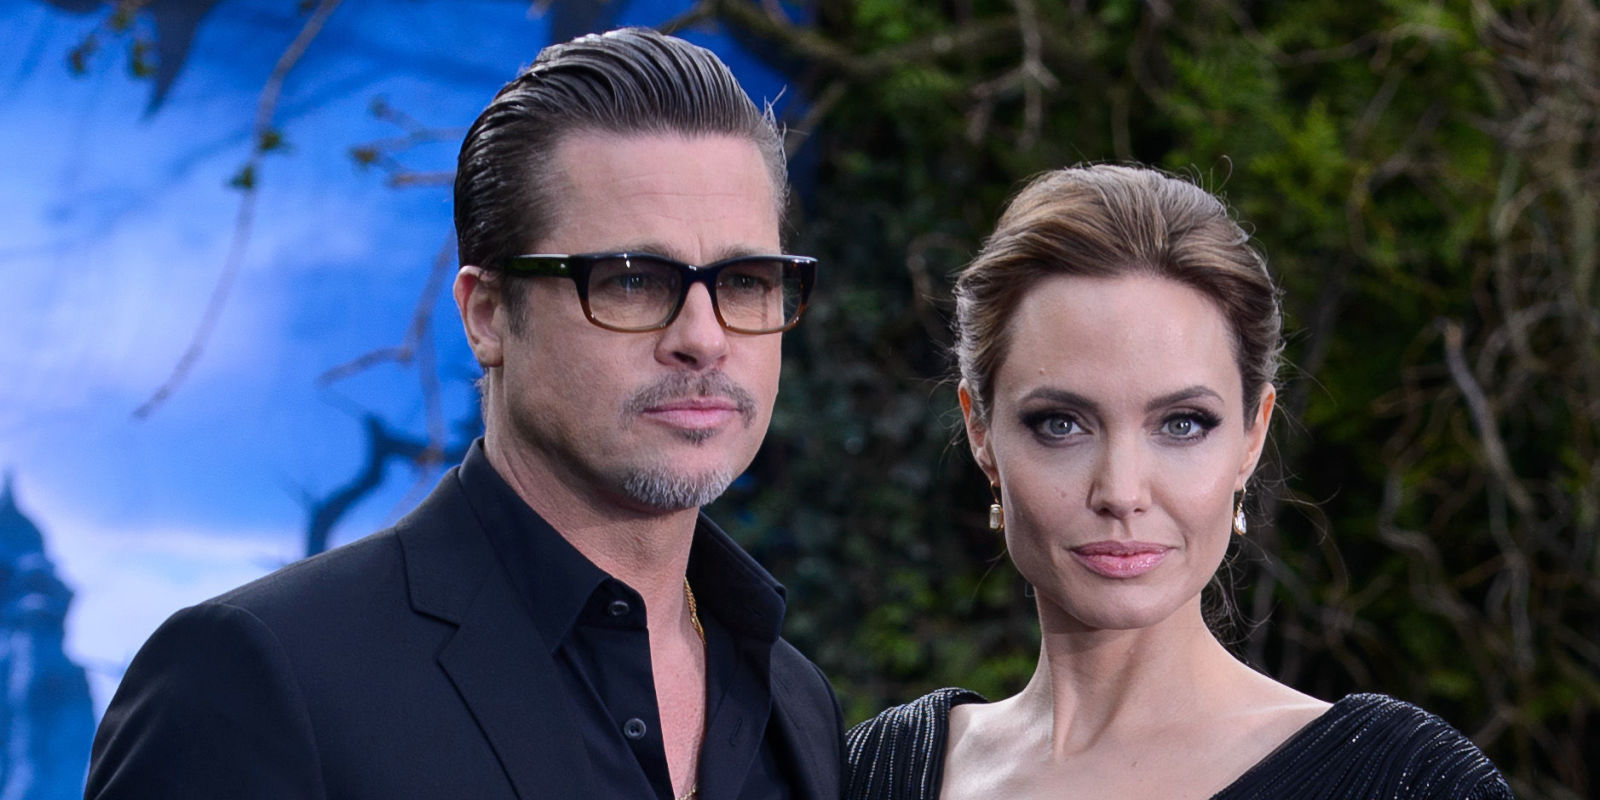 Brad Pitt and Angelina Jolie Adopted Again, Says the Internet